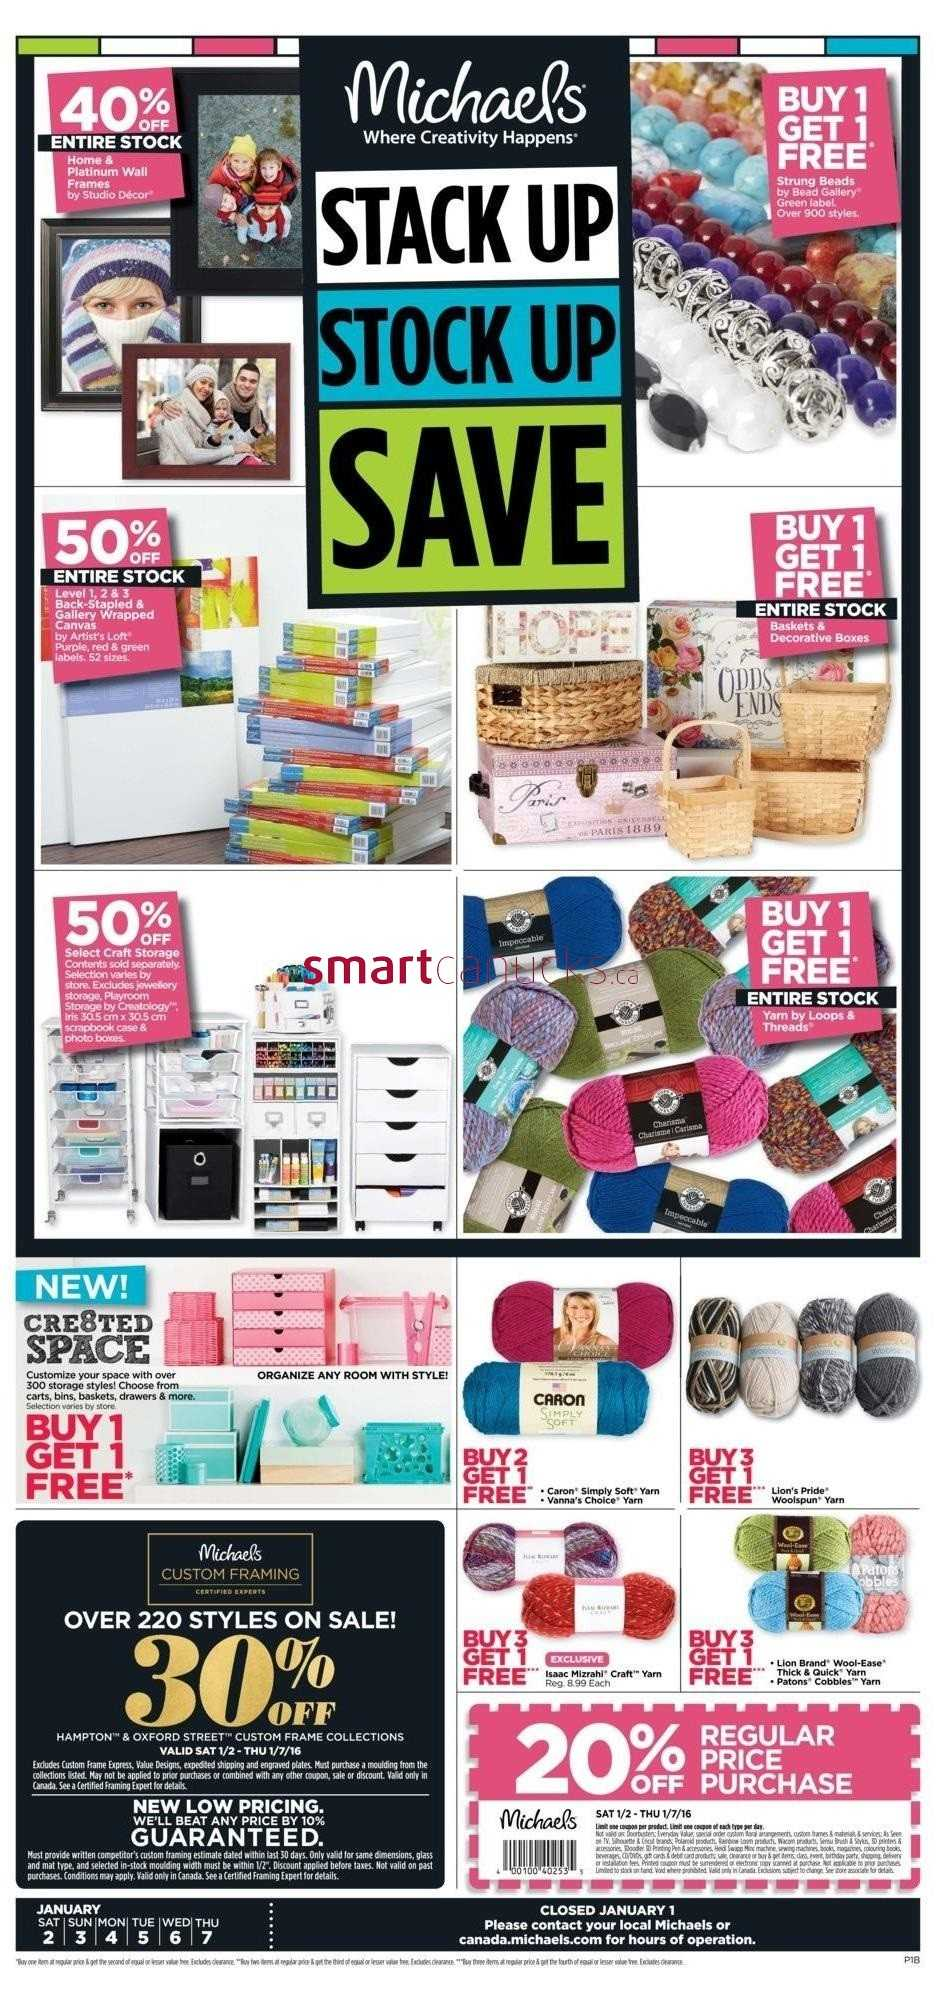 Michaels coupons canada flyerland